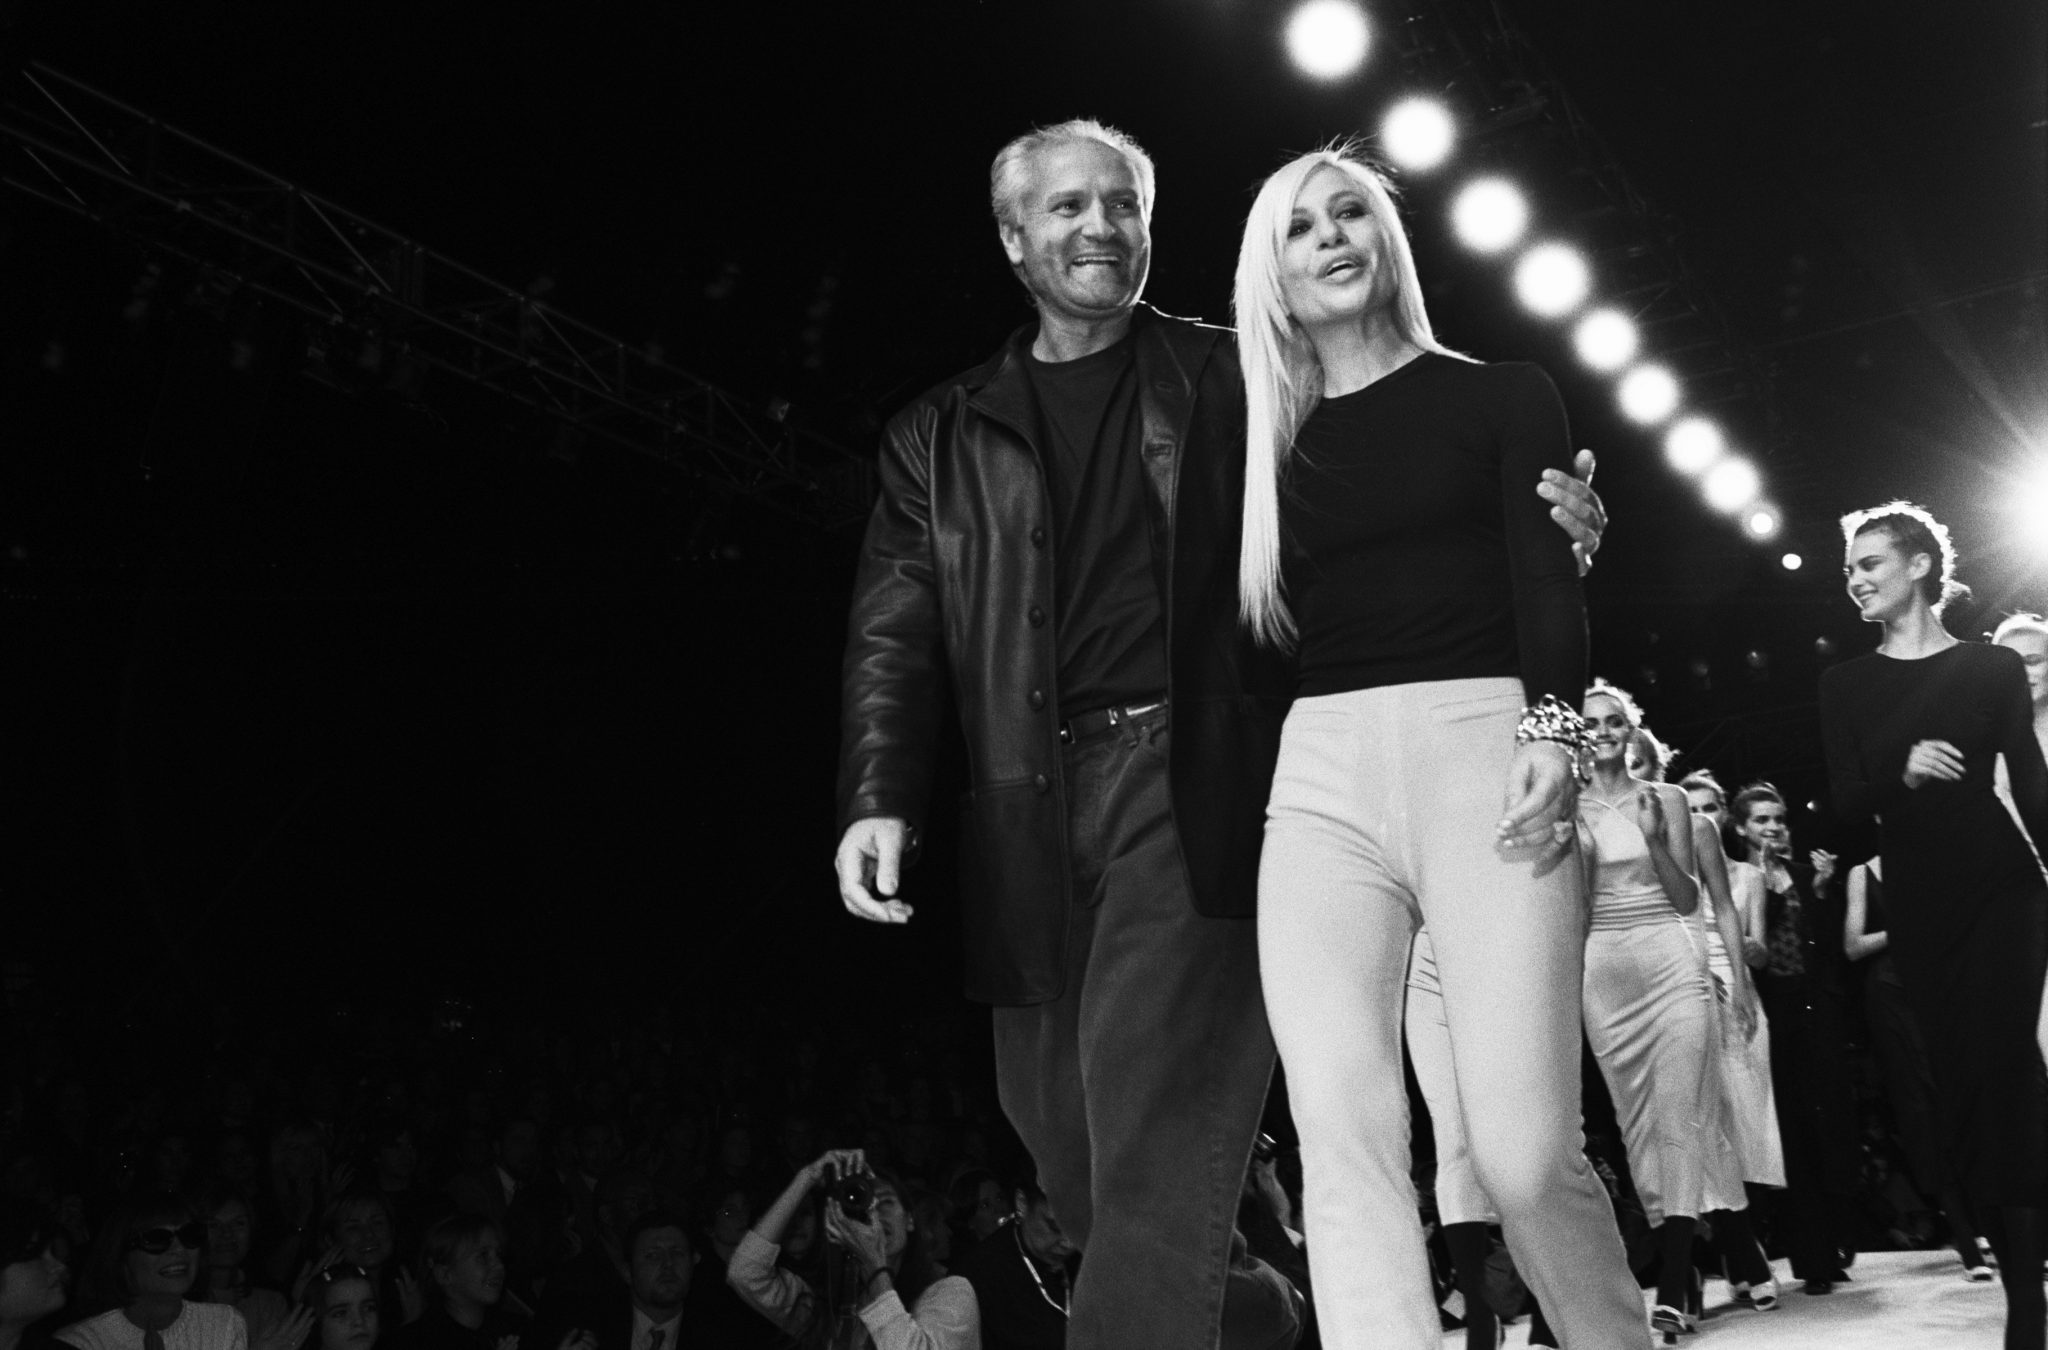 NEW YORK - MARCH 1996: Fashion designers Gianni Versace (1946 -1997) and Donatella Versace on the runway after a Versace fashion show in March 1996 in New York City, New York. (Photo by Catherine McGann/Getty Images)